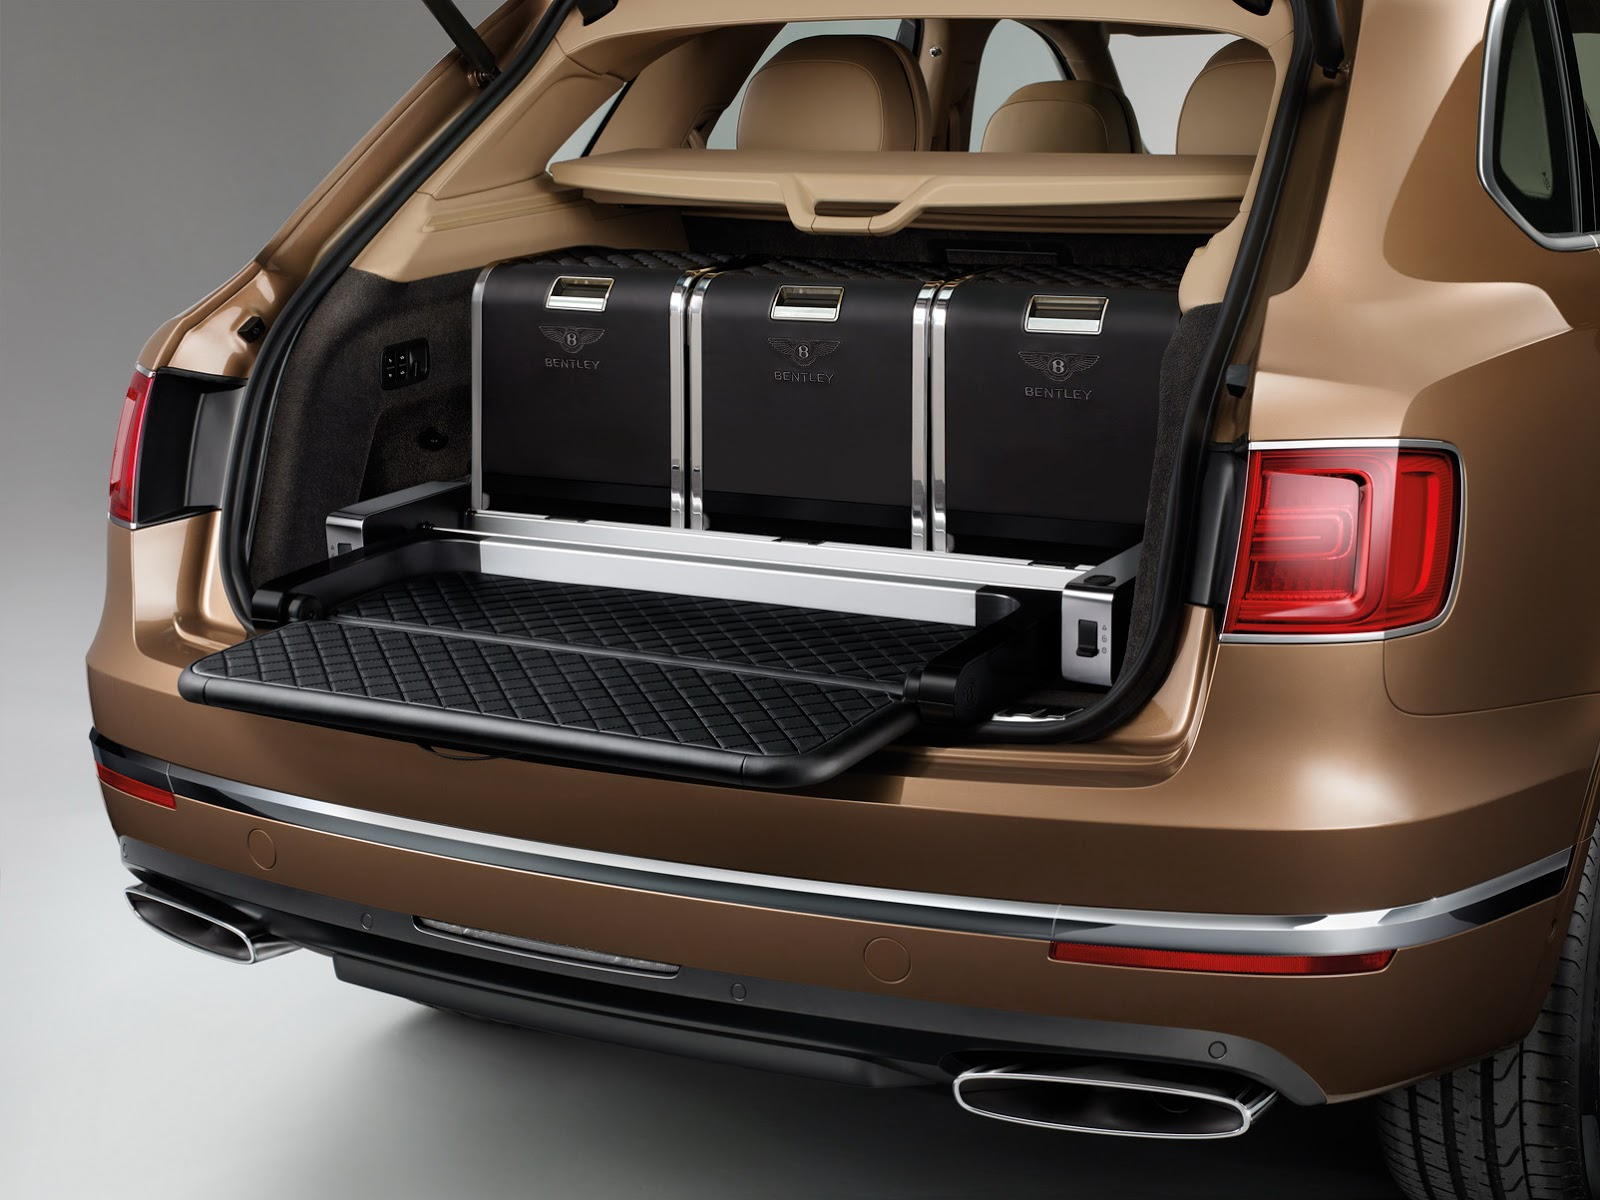 New Bentley Bentayga Suv Officially Revealed In 37 Pics